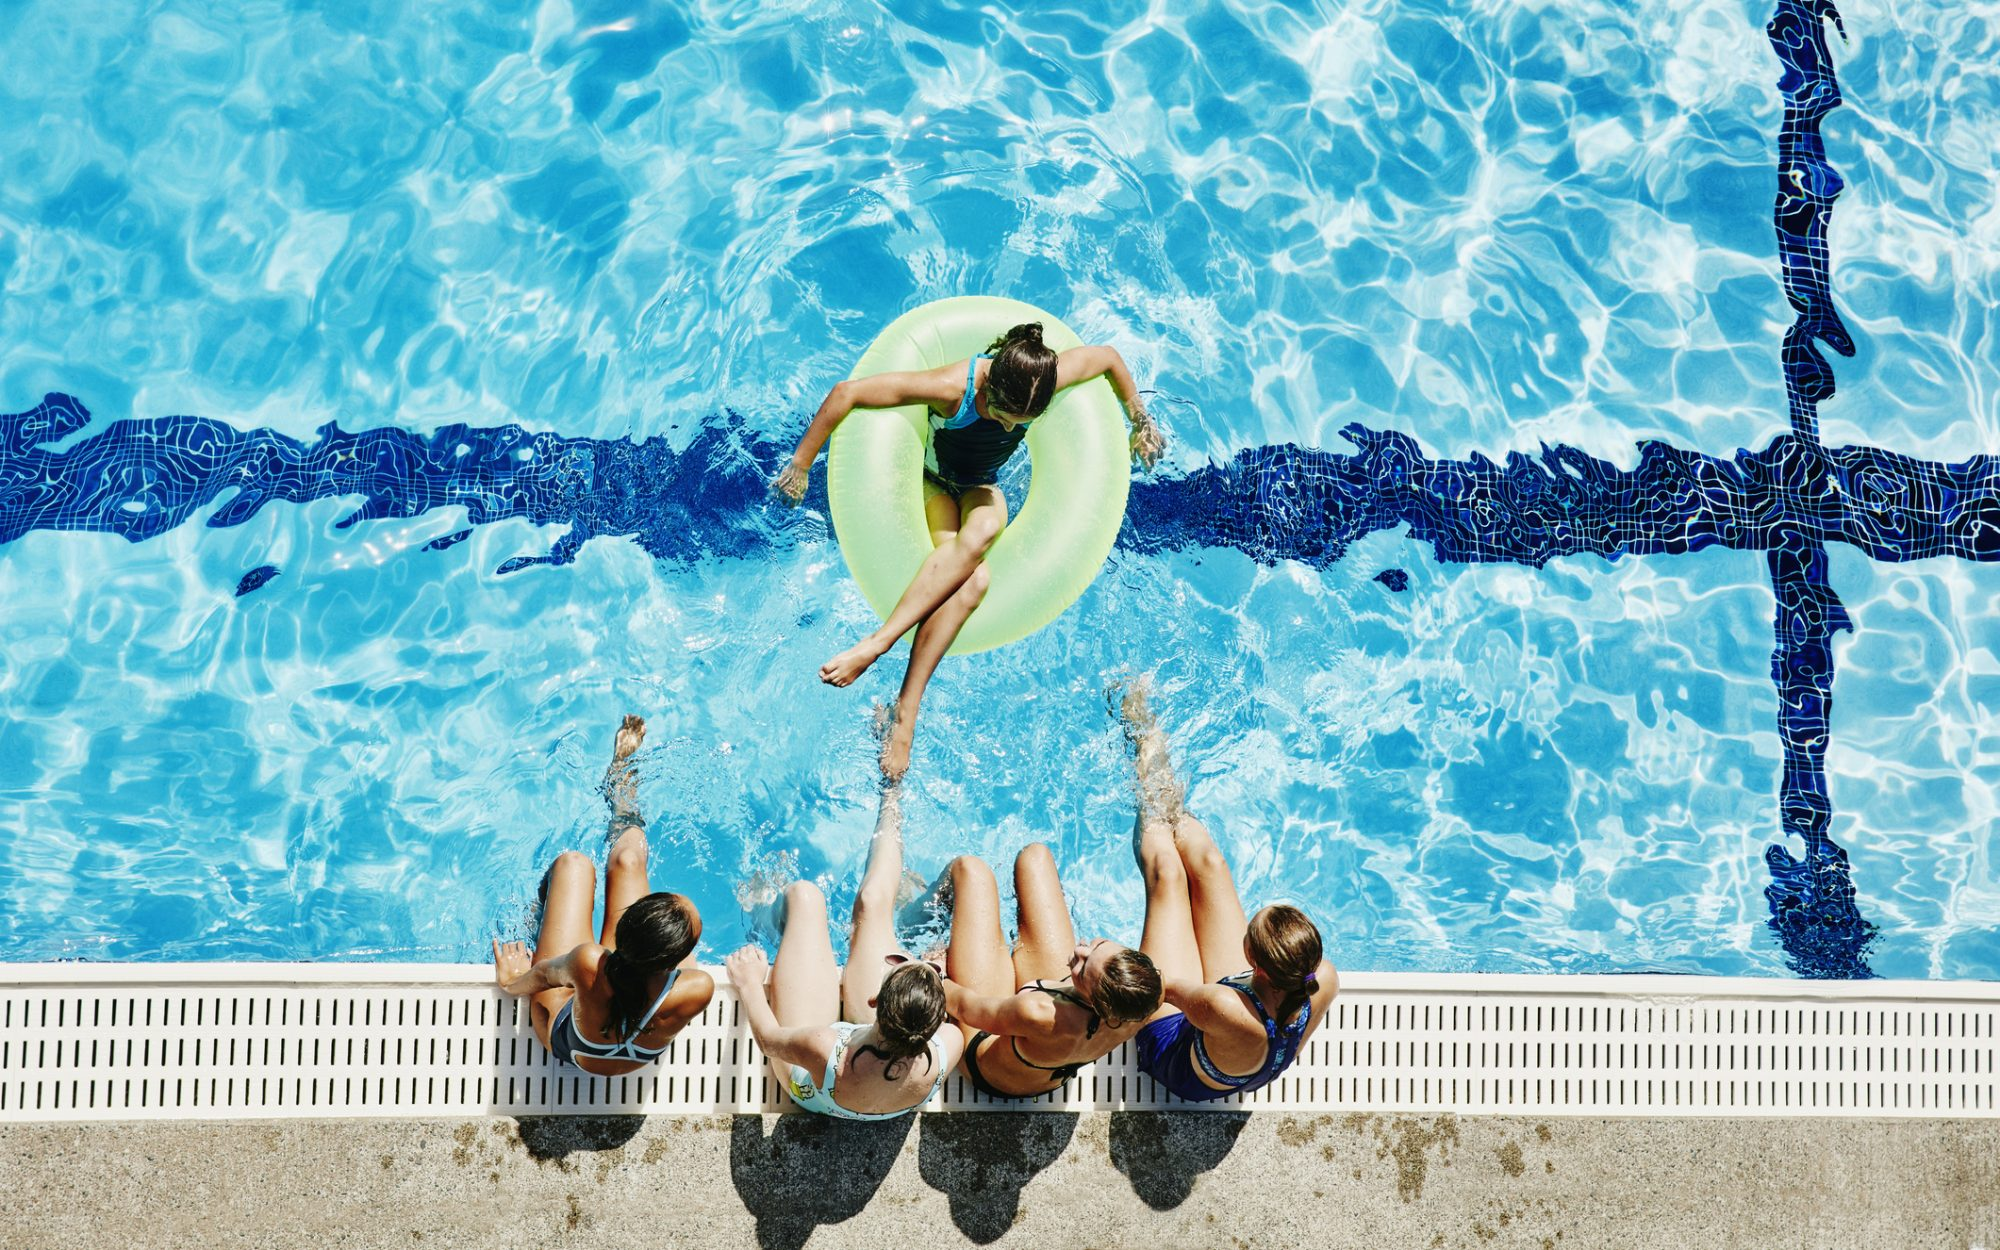 Swimming pools are even grosser than you thought